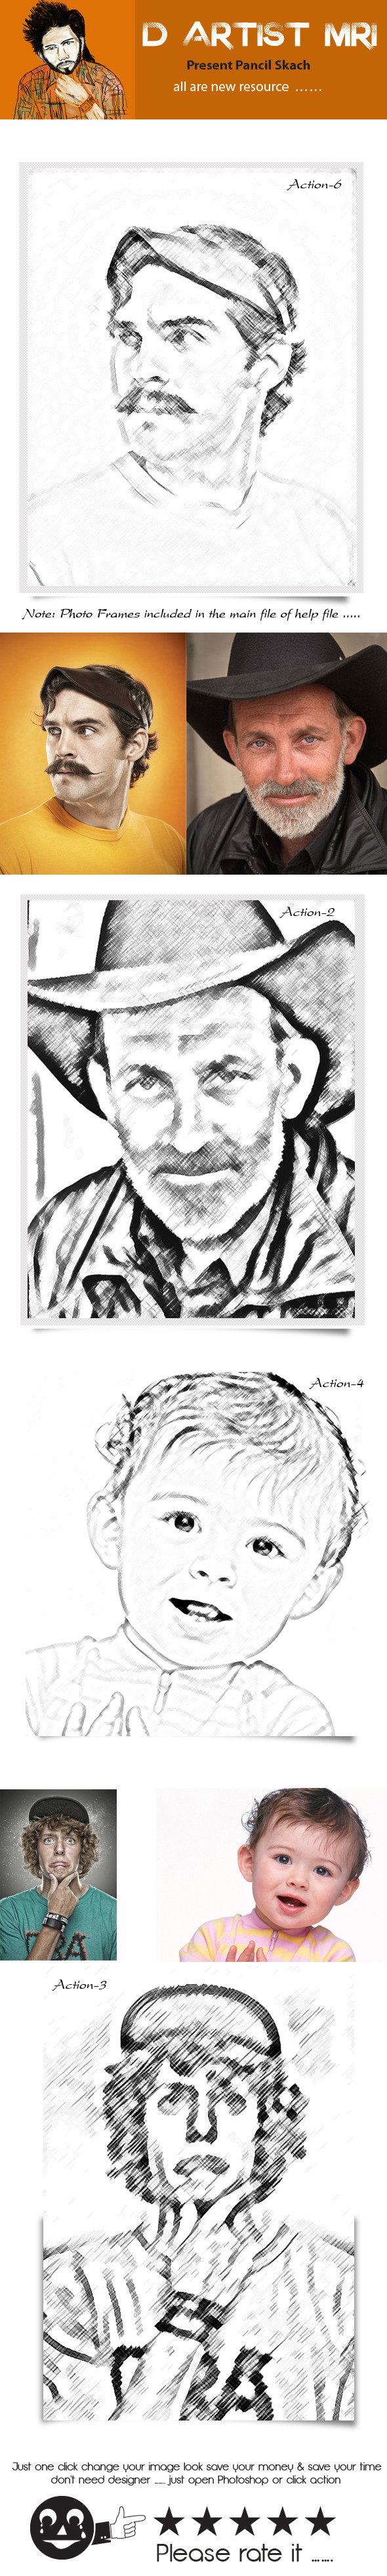 Pencil Sketch - Actions Photoshop